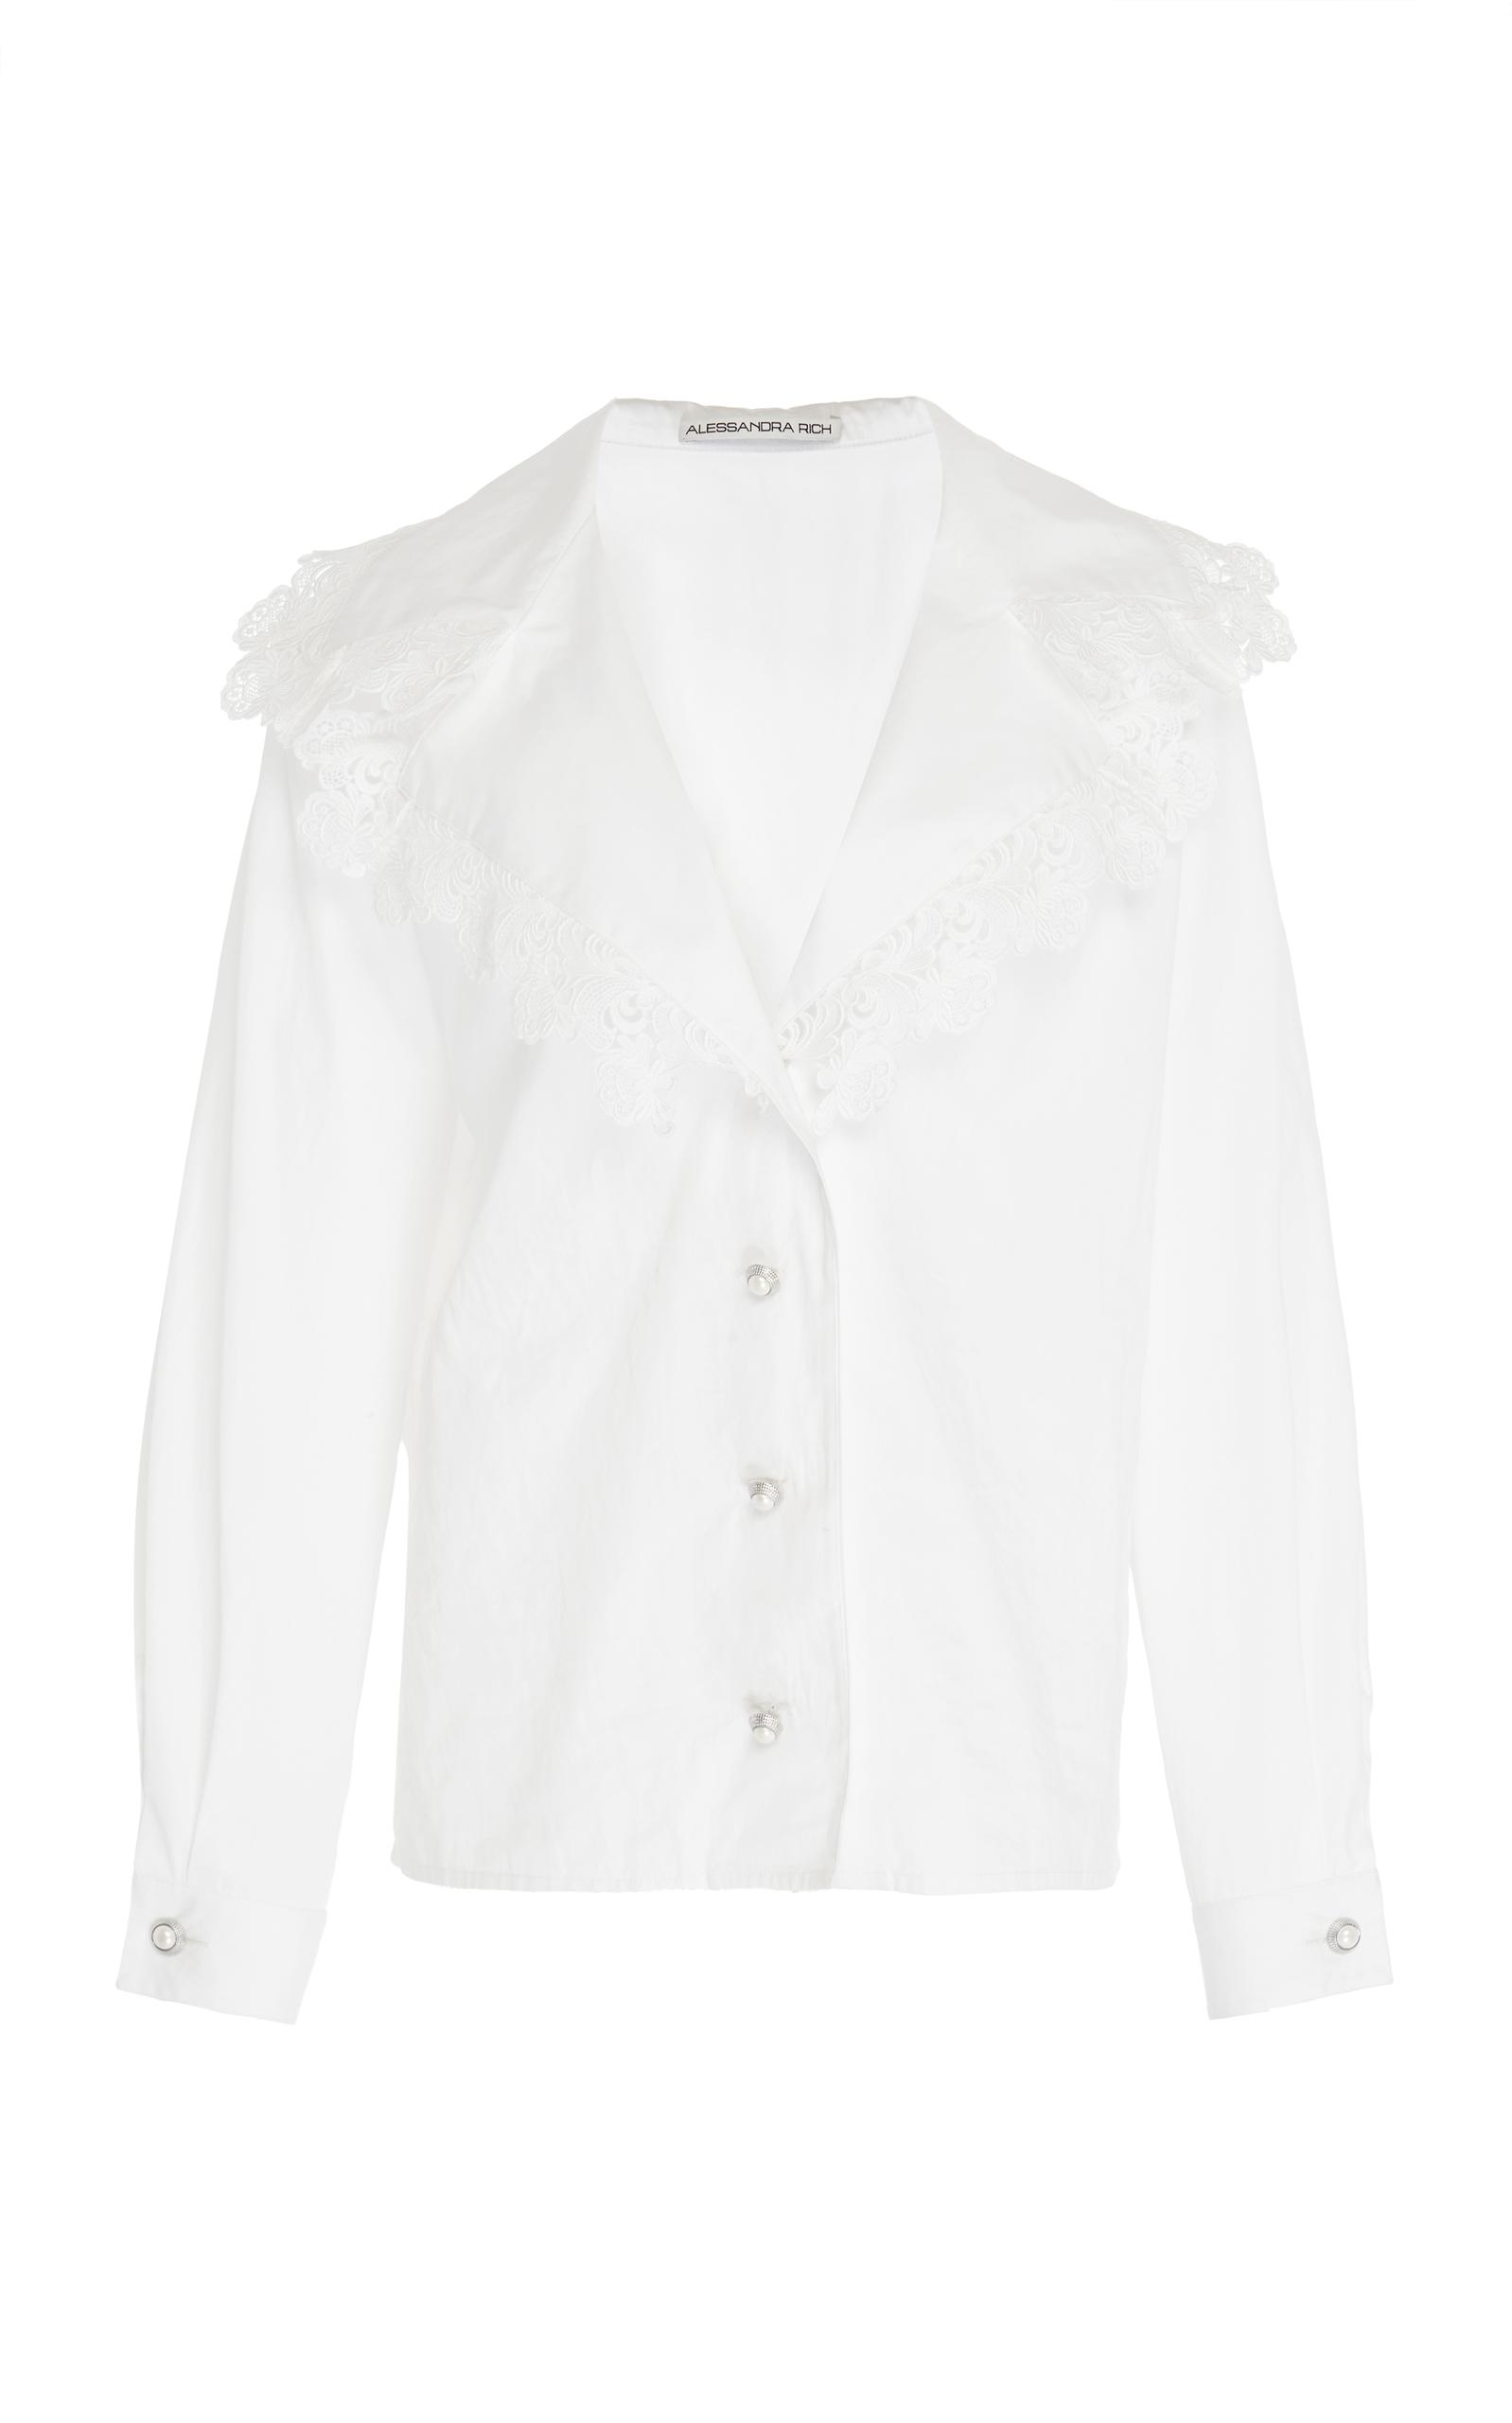 Alessandra Rich Long Sleeve Shirt In White